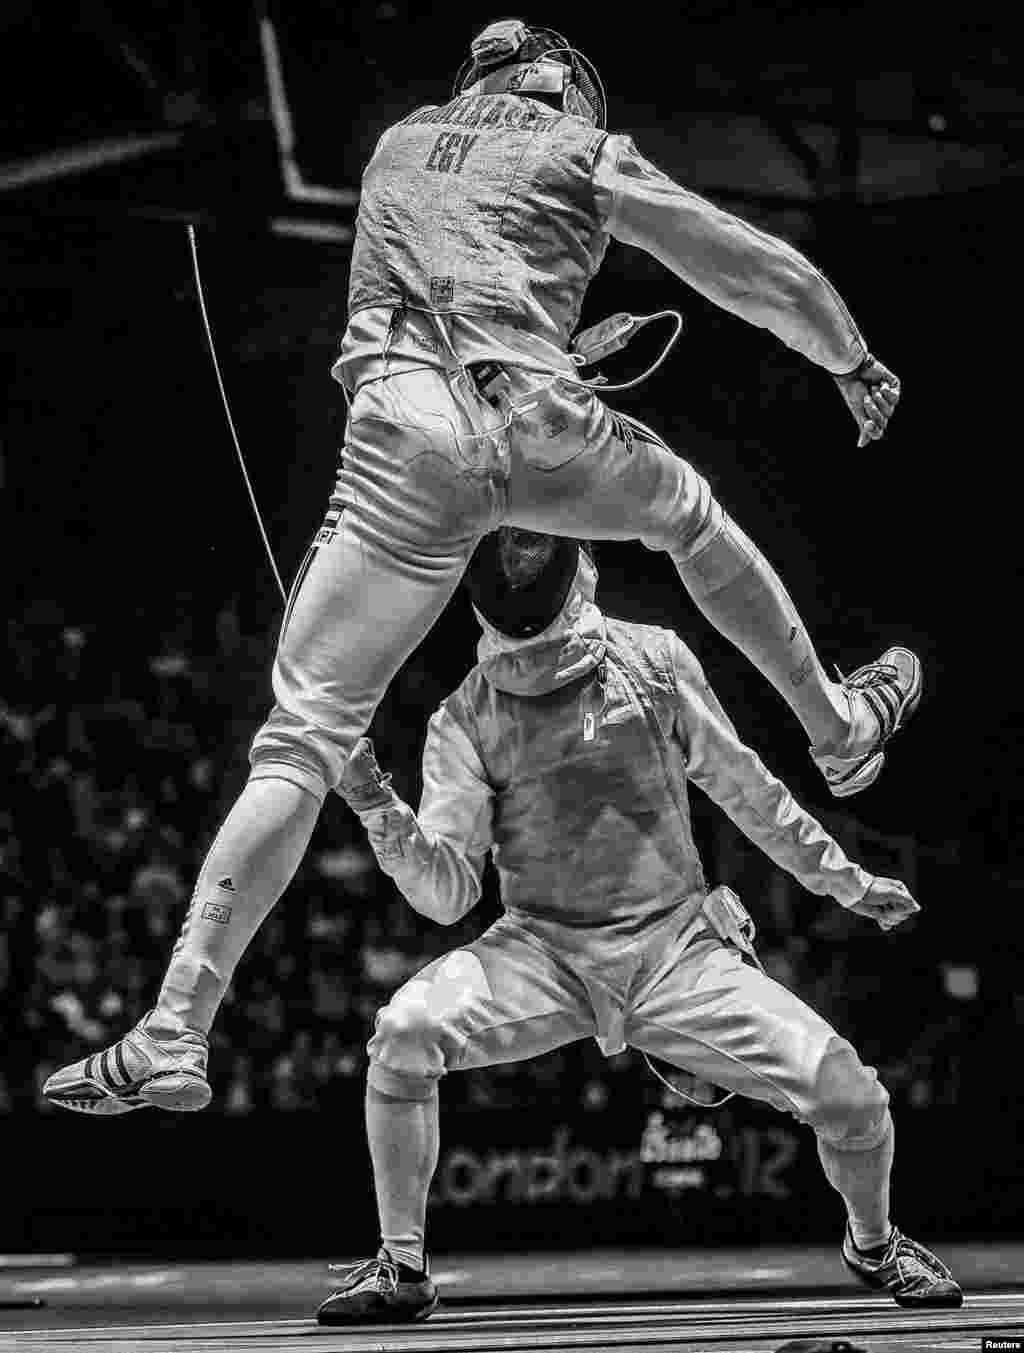 """Sergei Ilnitsky of Russia, a photographer working for the European Pressphoto Agency, won second prize in the Sports Action Stories category with the series """"The Golden Touch -- Fencing at the Olympics."""" This picture shows Alaaeldin Abouelkassem of Egypt (top) in action against Peter Joppich of Germany during their Men's Foil Individual round 16 bout at the 2012 Olympic Games in London."""